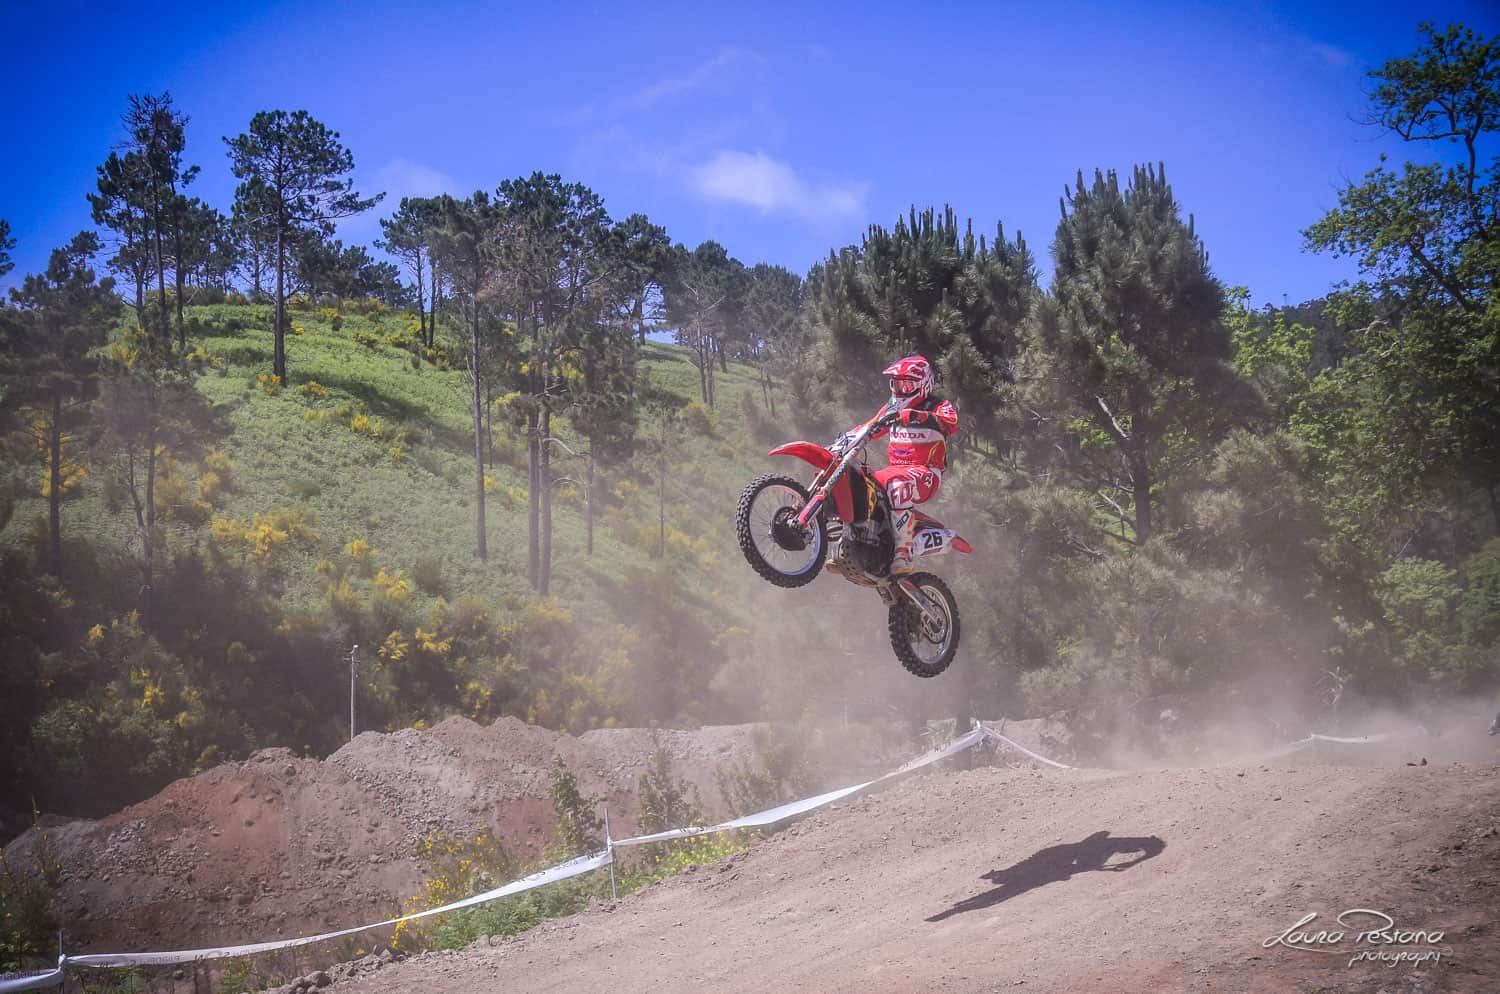 A Rider jumping with his bike